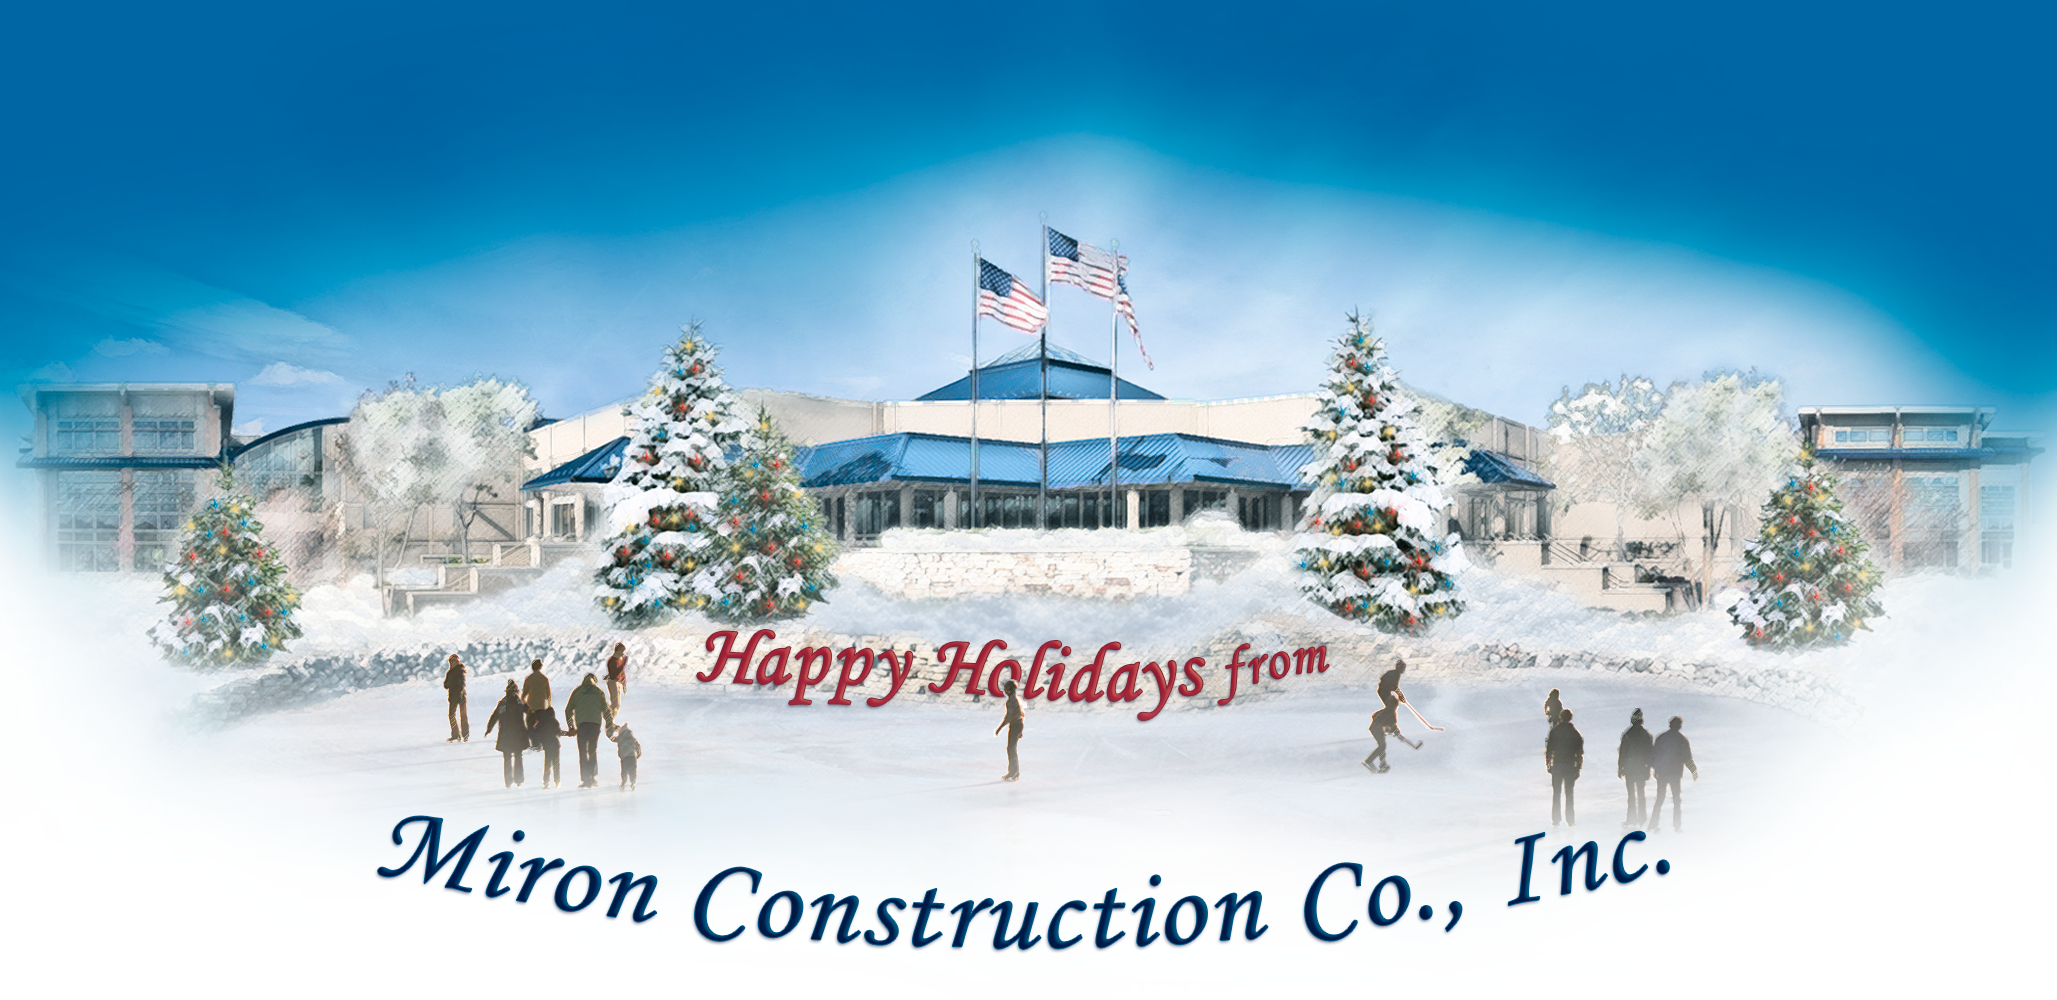 Happy Holidays from Miron Construction Co., Inc.